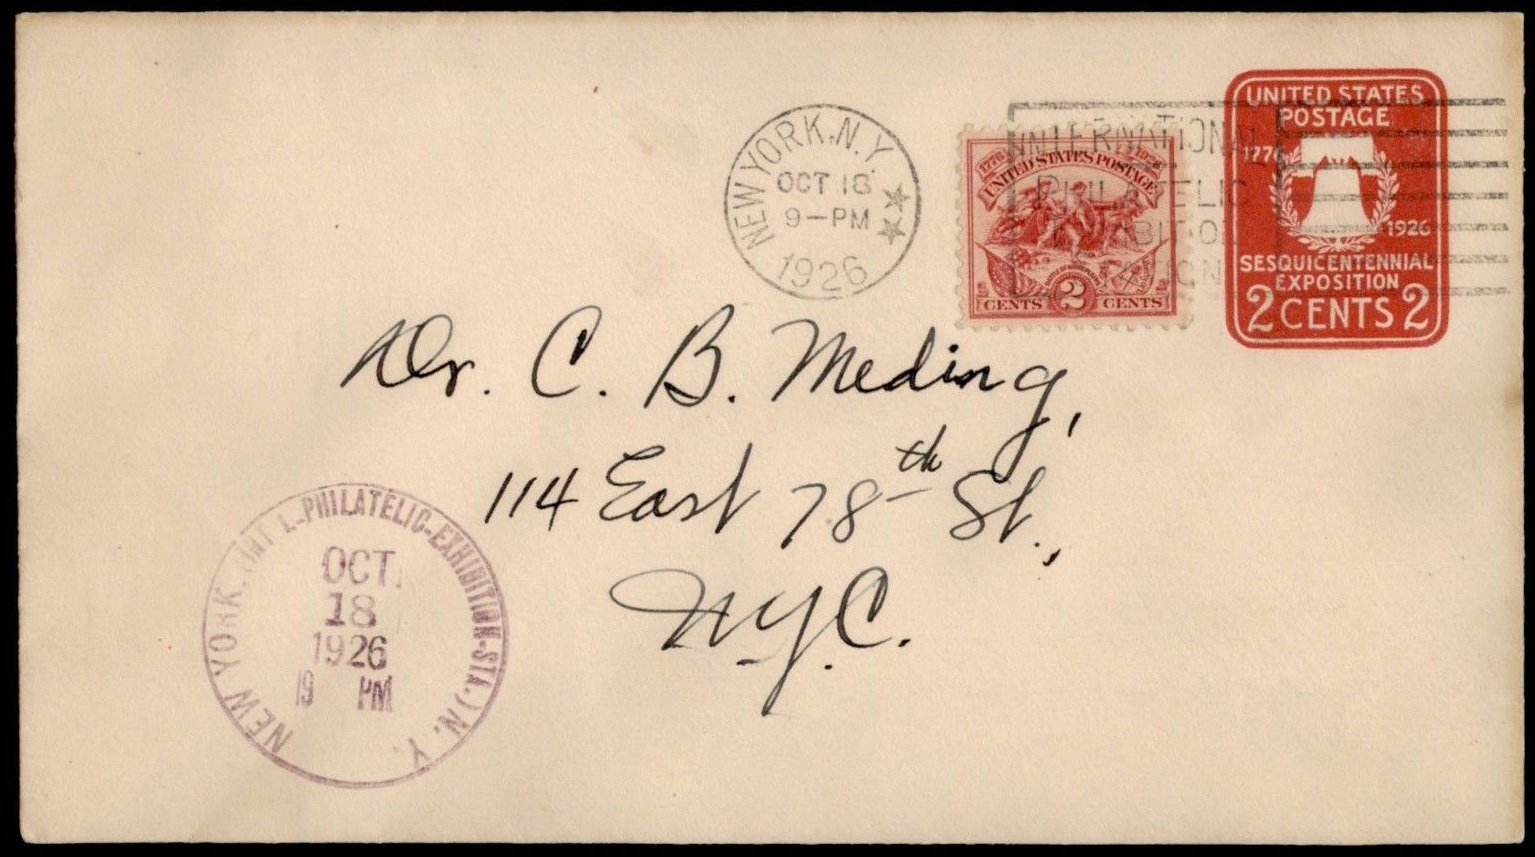 United States - Scott #629 (1926) - first day cover on pre-stamped Sesquicentennial Exhibition envelope; with New York machine postmark (International Philatelic Exhibition slogan) and hand-stamped Exhibition cancellation.